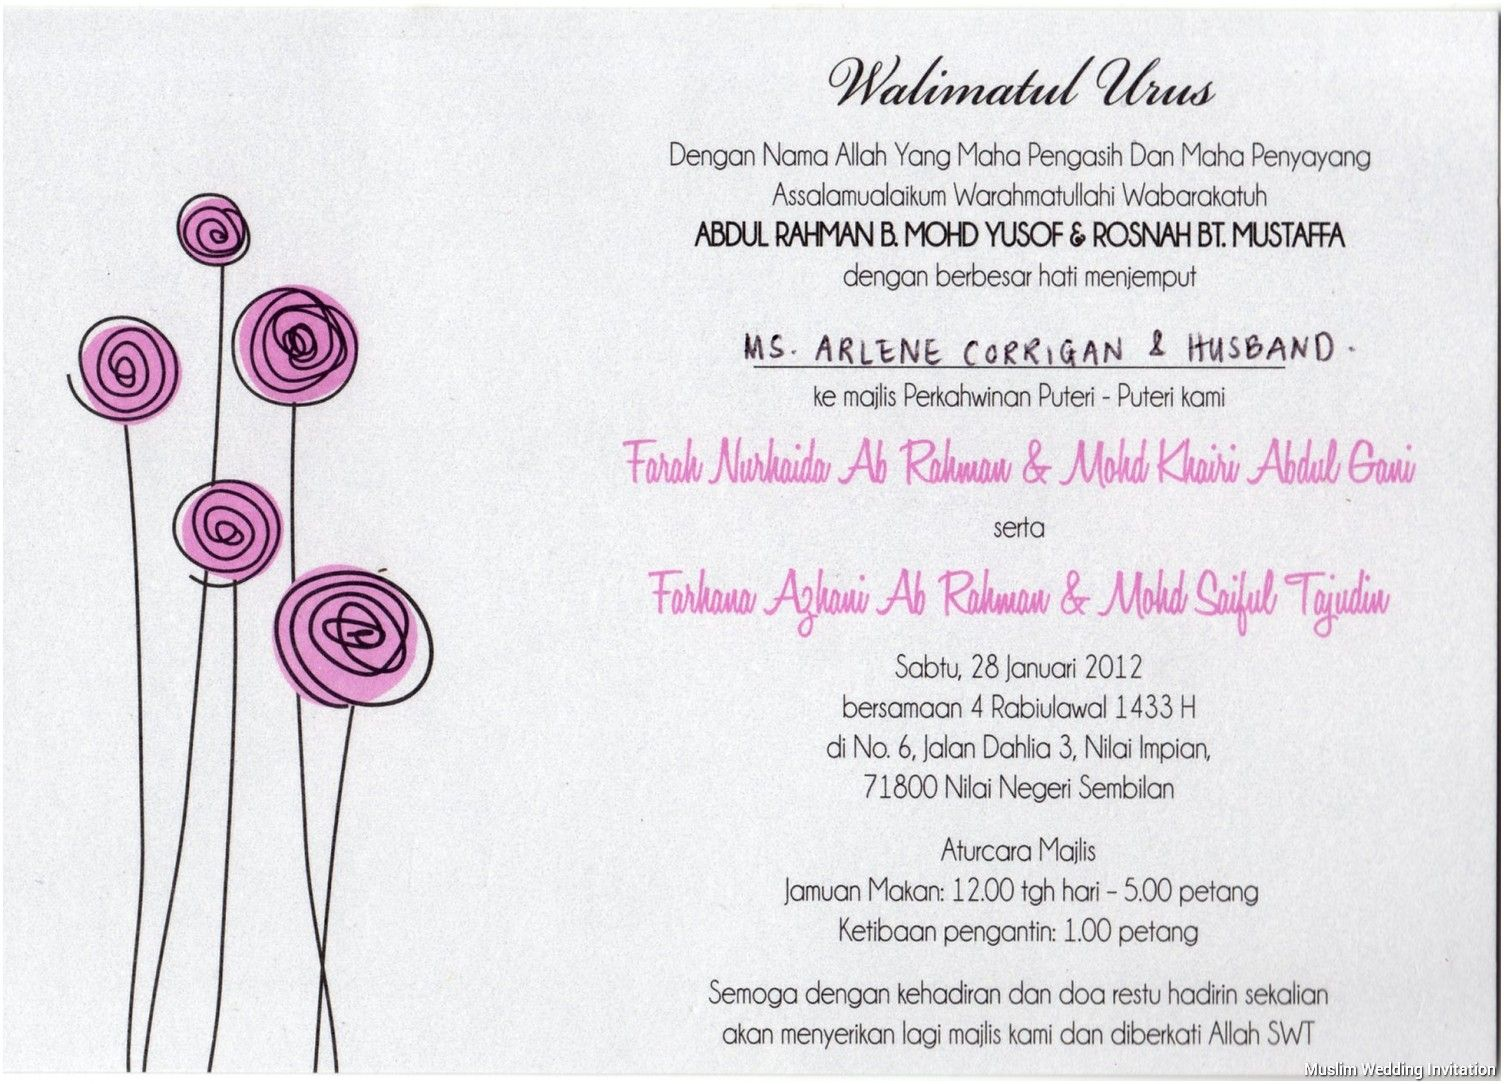 Wedding Invitation Wordings Muslim Wedding Invitation Wordings - Islamic wedding invitation templates